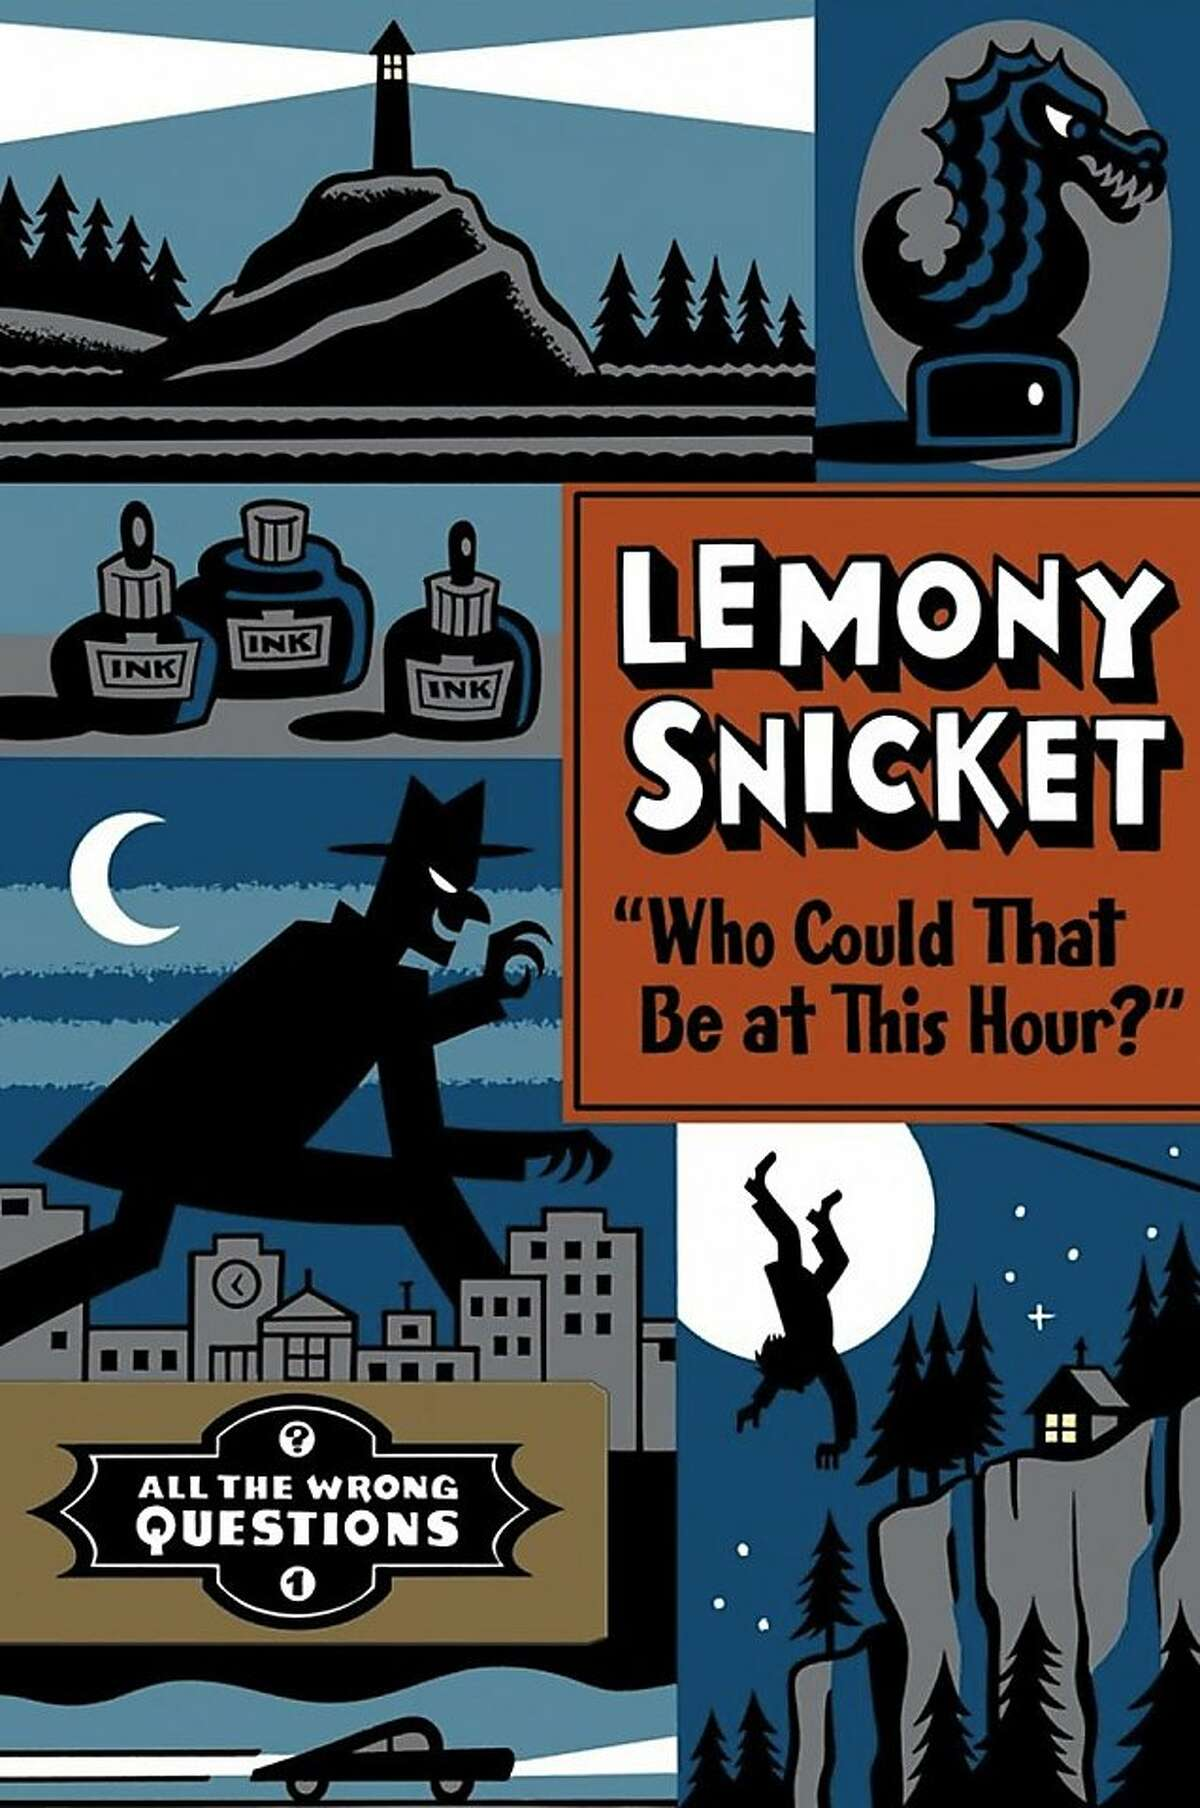 """""""Who Could That Be at This Hour?"""" All the Wrong Questions #1, by Lemony Snicket"""